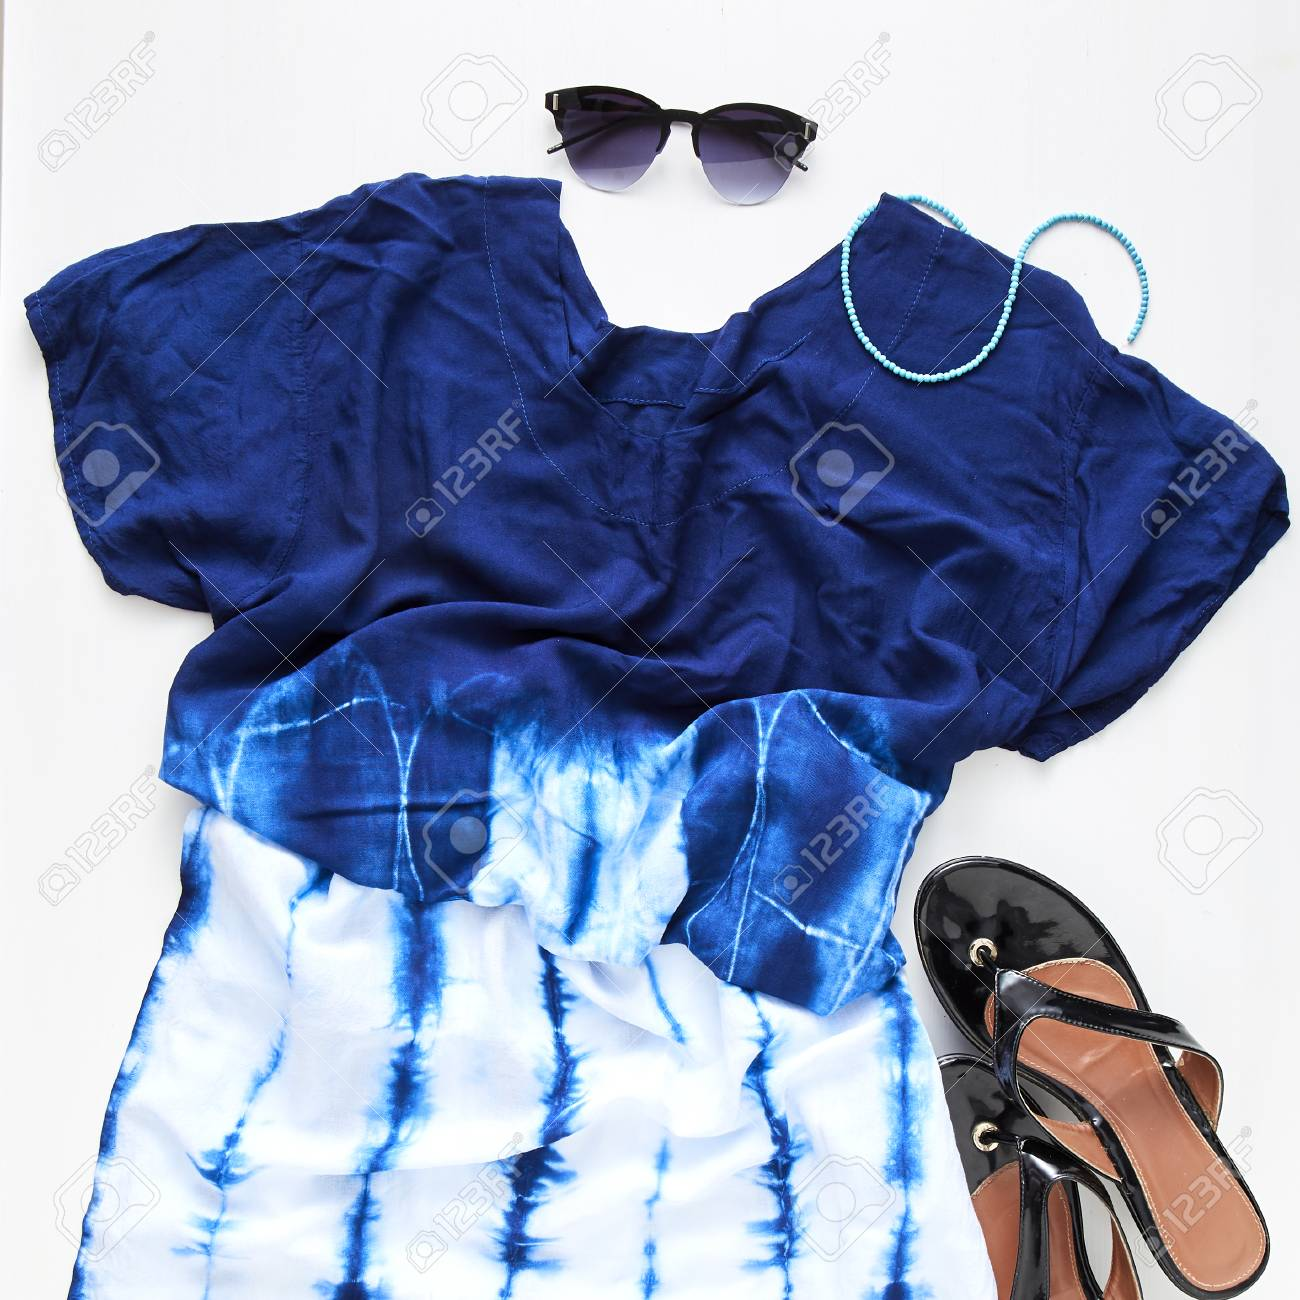 88affea8002a flat lay feminine clothes and accessories collage with jean, sunglasses,  earring White wood table